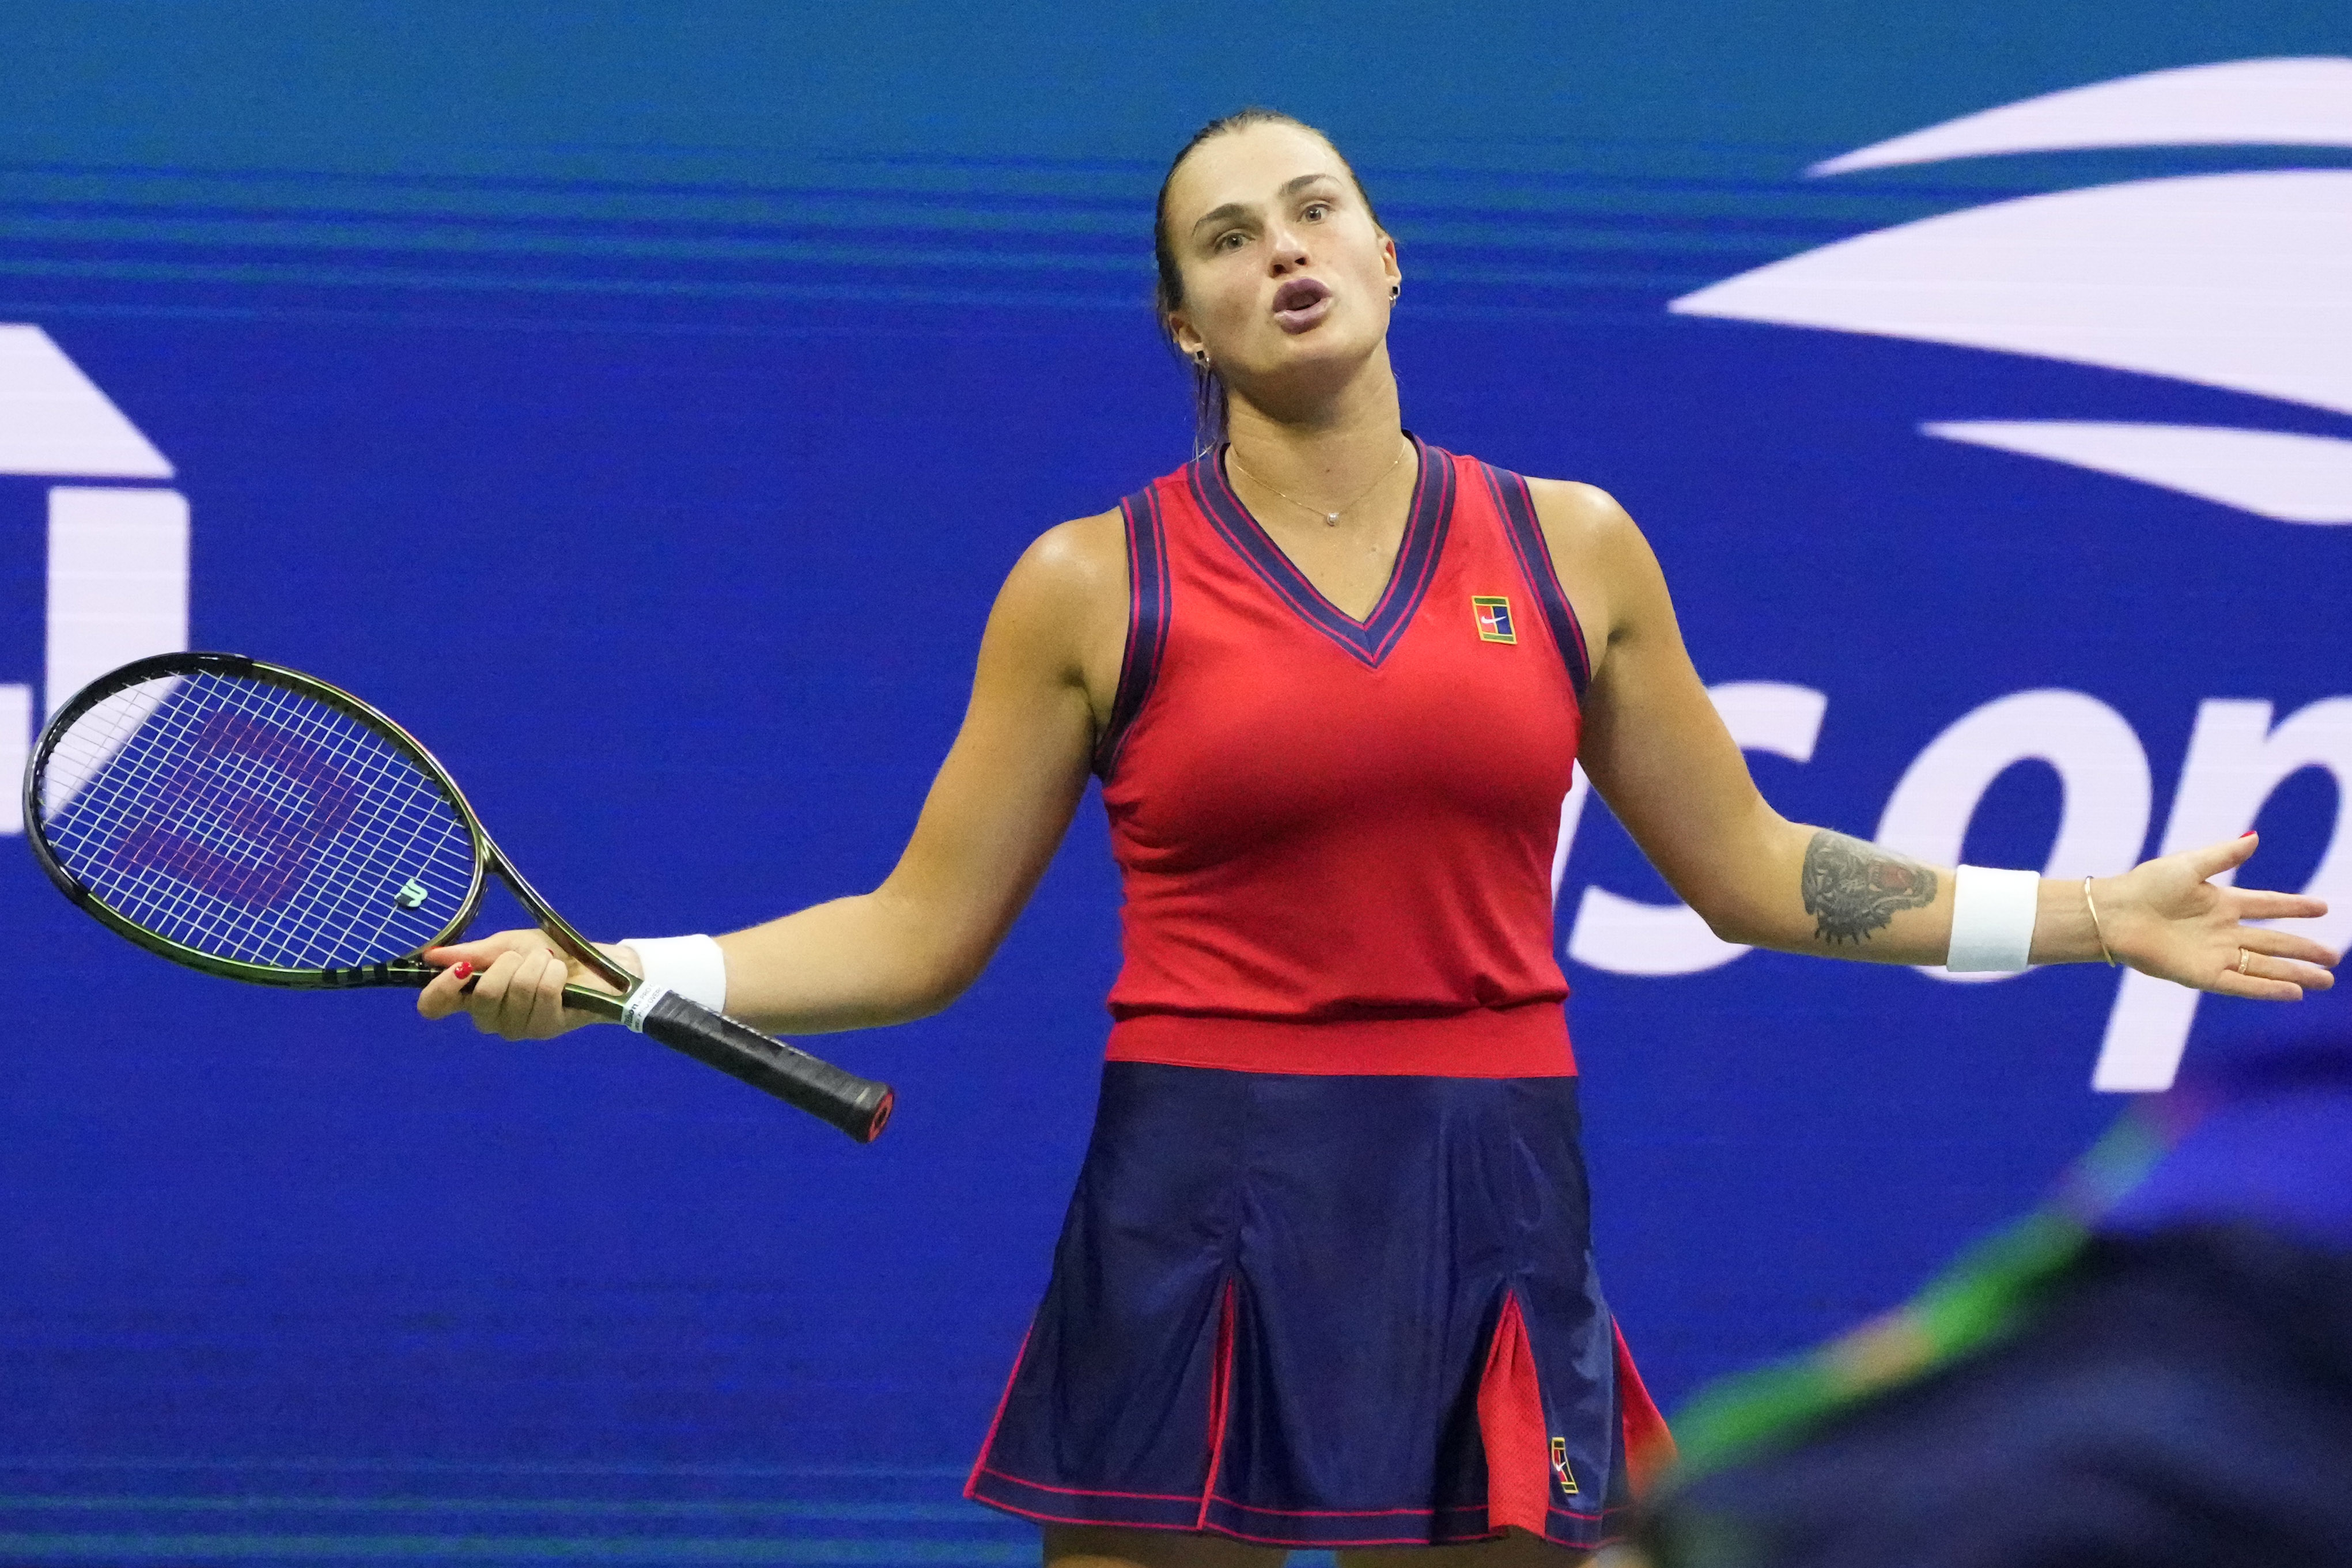 Sep 9, 2021; Flushing, NY, USA; Aryna Sabalenka of Belarus reacts after losing a point against Leylah Fernandez of Canada (not pictured)on day eleven of the 2021 U.S. Open tennis tournament at USTA Billie Jean King National Tennis Center. / Robert Deutsch-USA TODAY Sports/File Photo